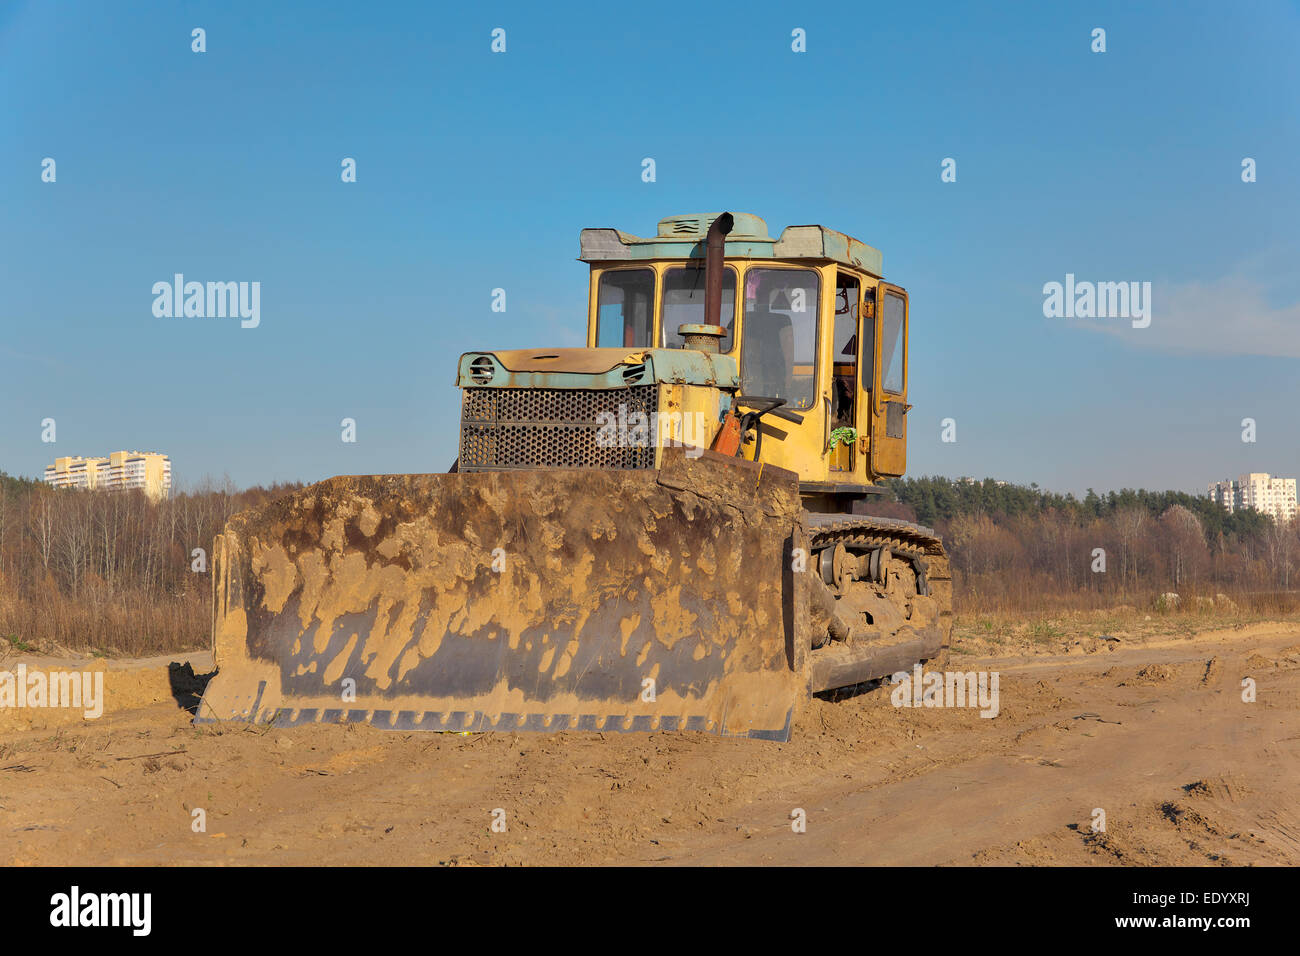 Yellow bulldozer on the construction site - Stock Image